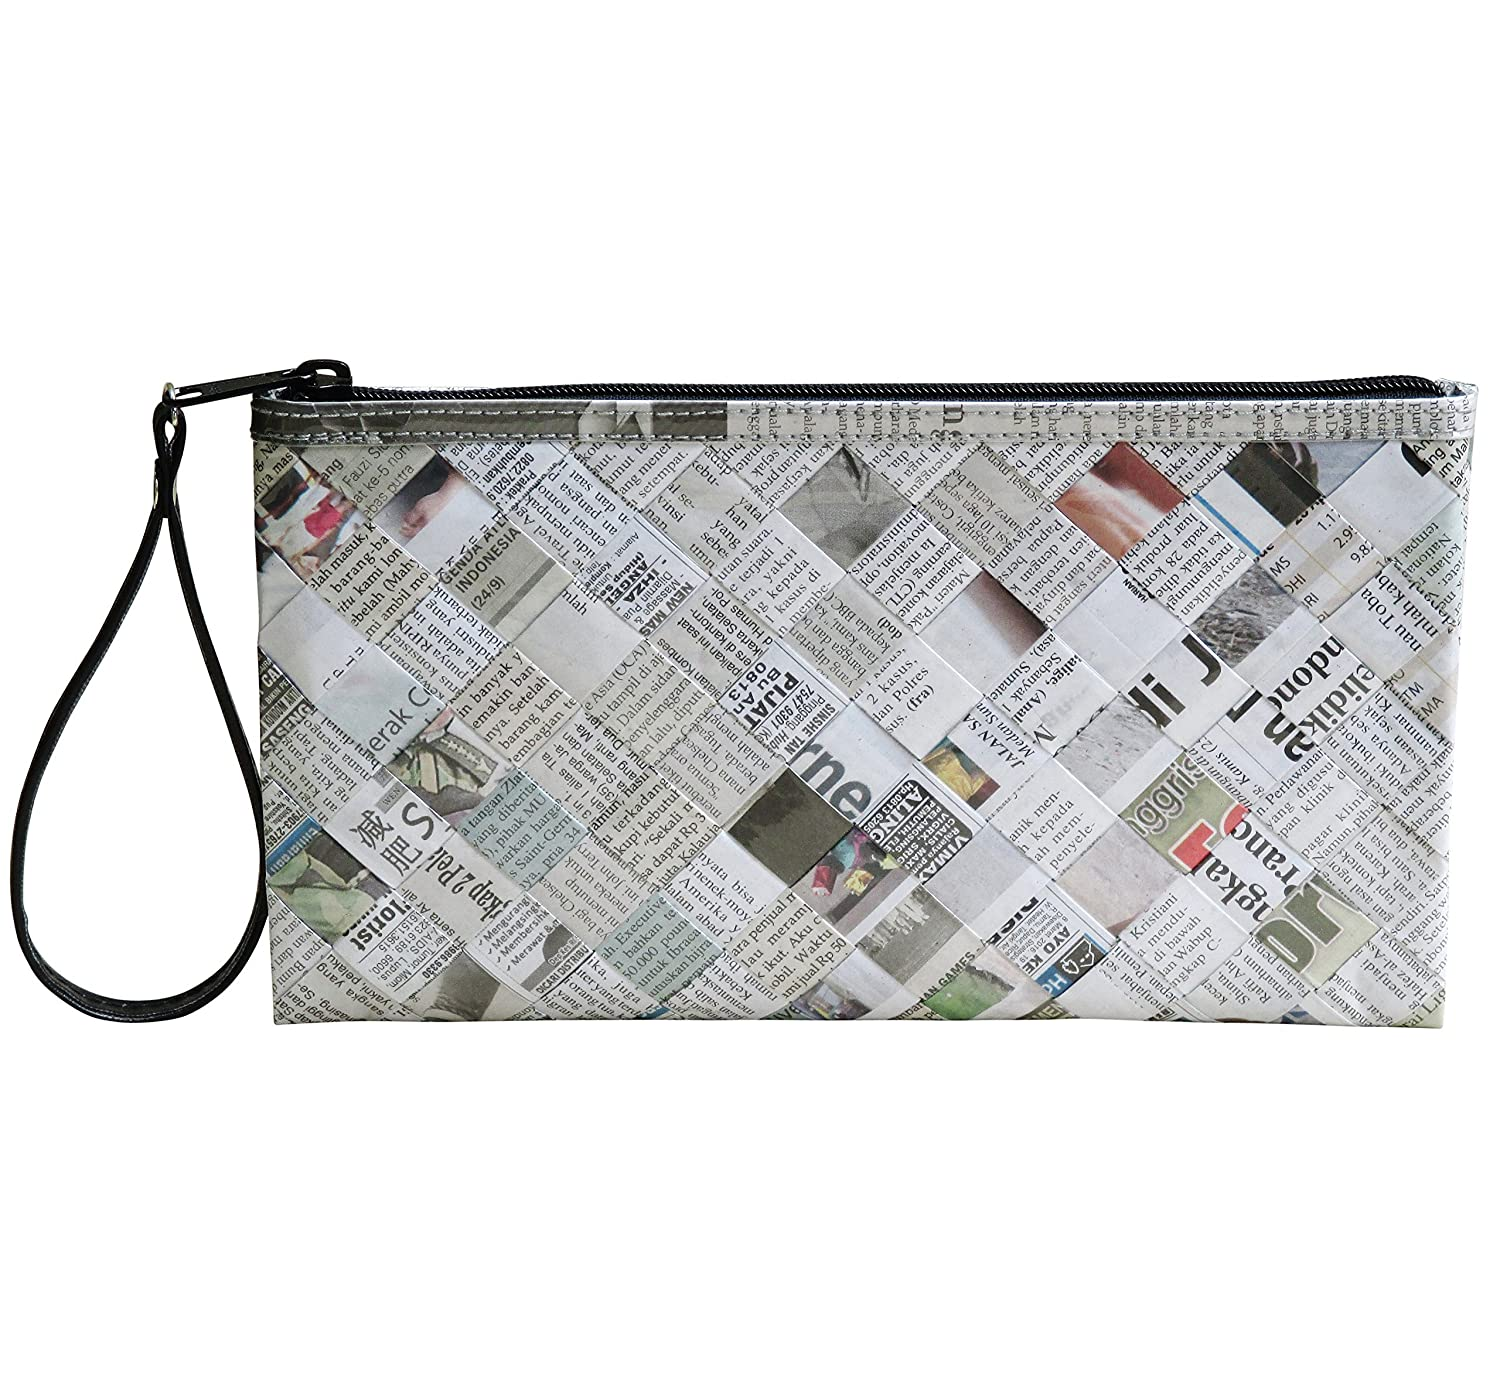 Large wristlet using daily newspaper - FREE SHIPPING, upcycled style eco friendly vegan repurposed salvaged reclaimed bag purse clutch clutches gift for recycler upcycling paper recycling art